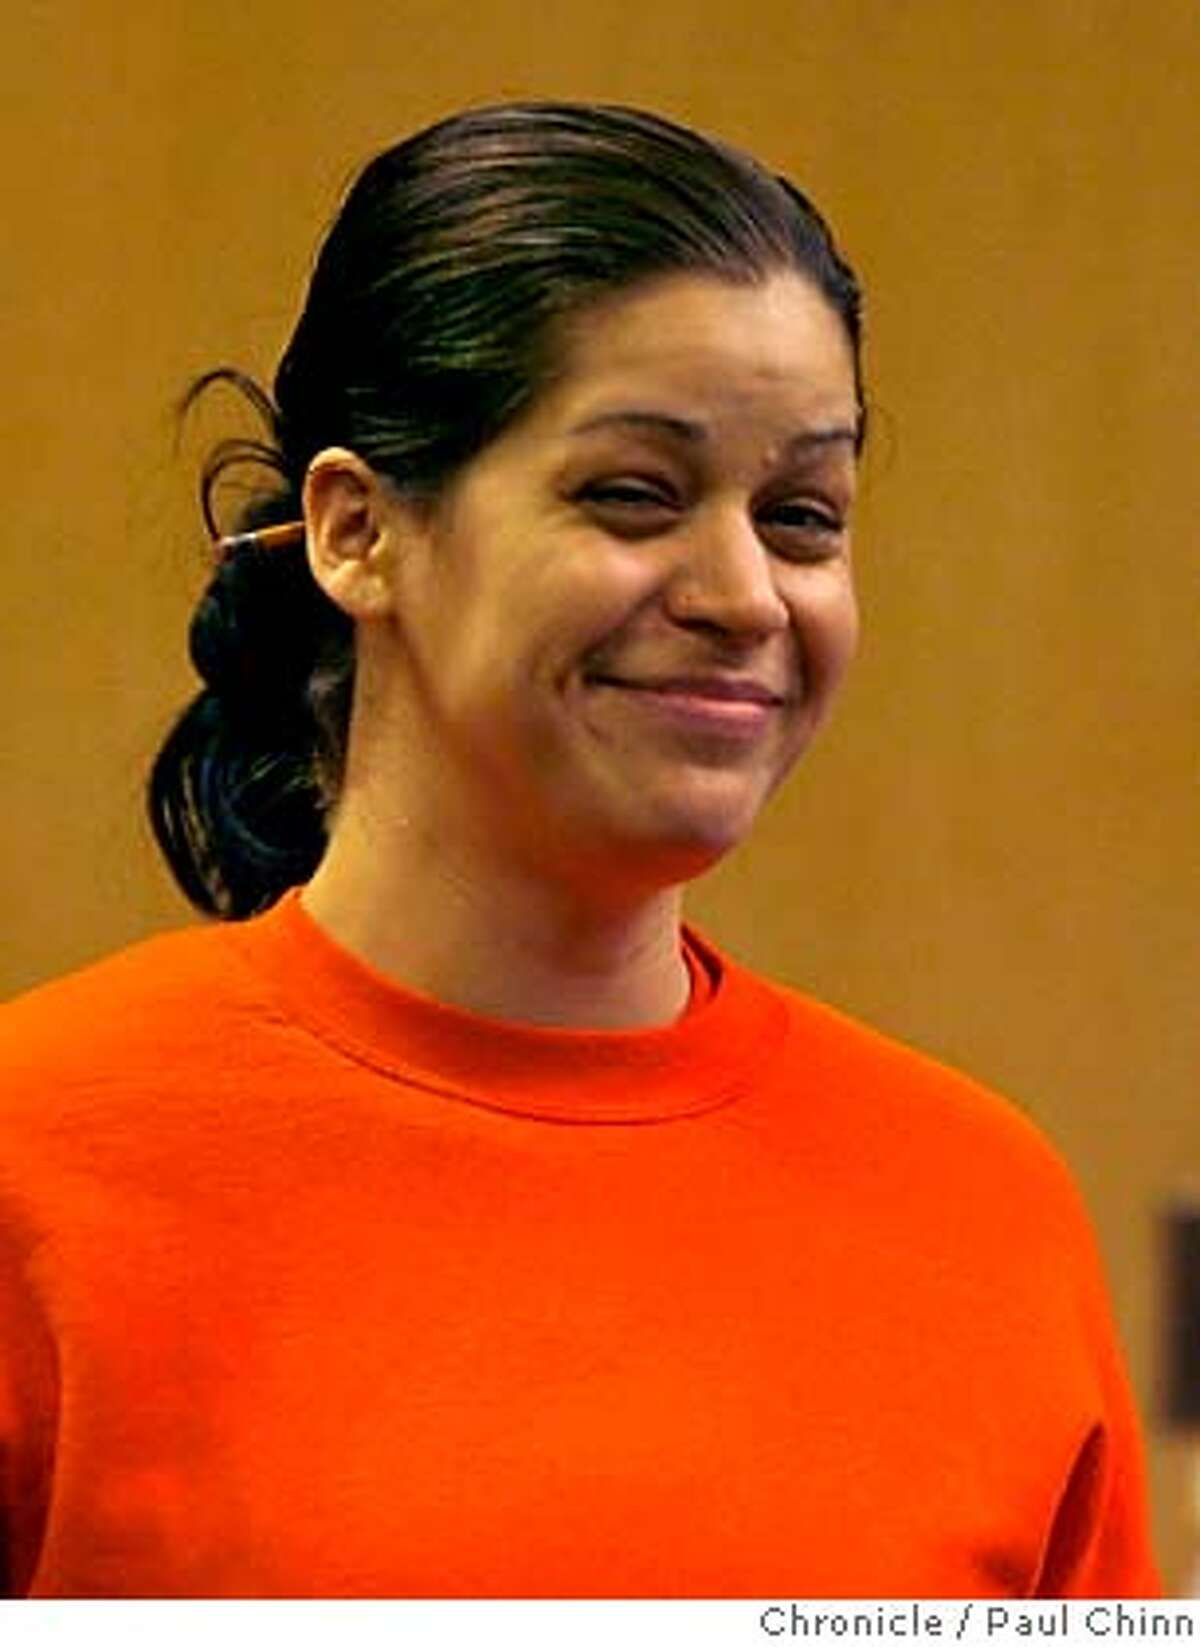 Maria Nelson smiles as she enters the courtroom before she was sentenced to three years probation in San Francisco, Calif. on Wednesday, June 6, 2007. Nelson was convicted of stealing the identity of Karen Lodrick. PAUL CHINN/The Chronicle **Maria Nelson, Karen Lodrick